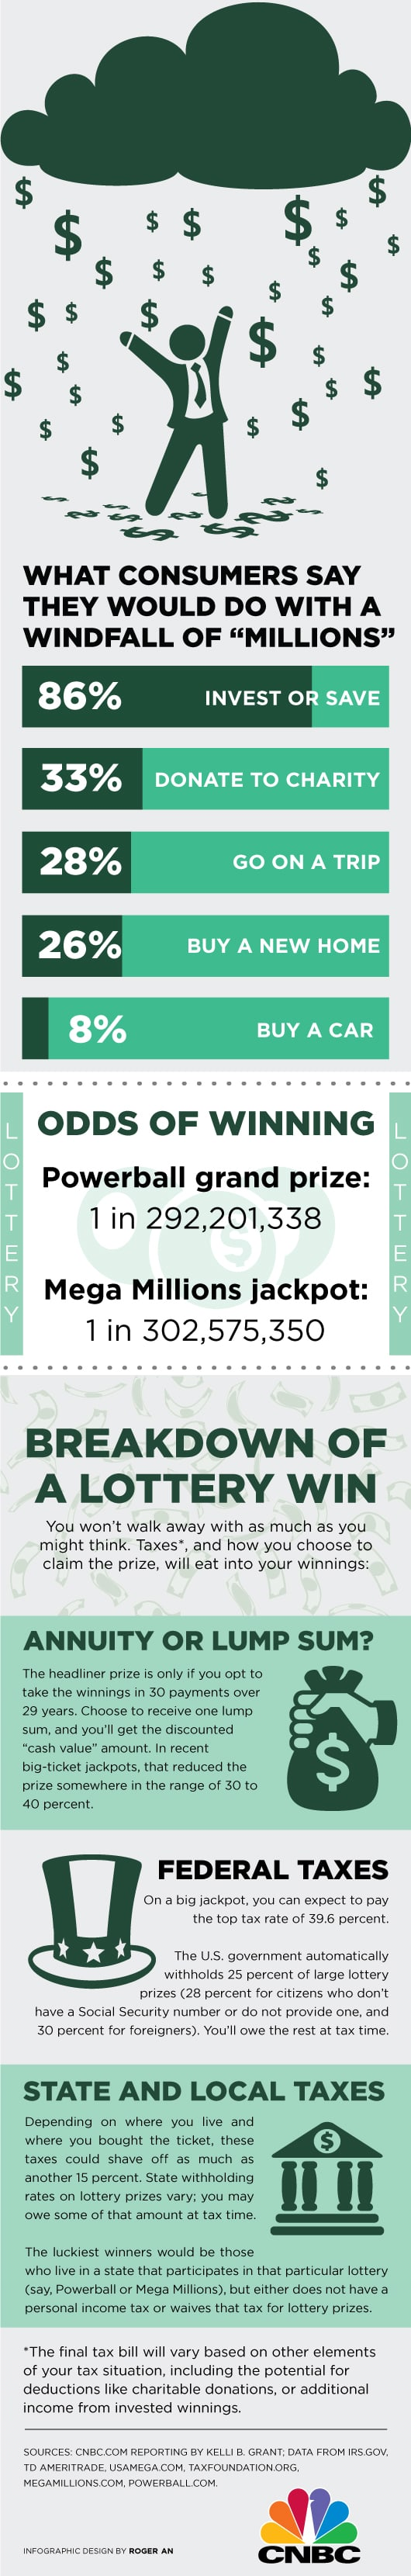 Lottery winnings infographic